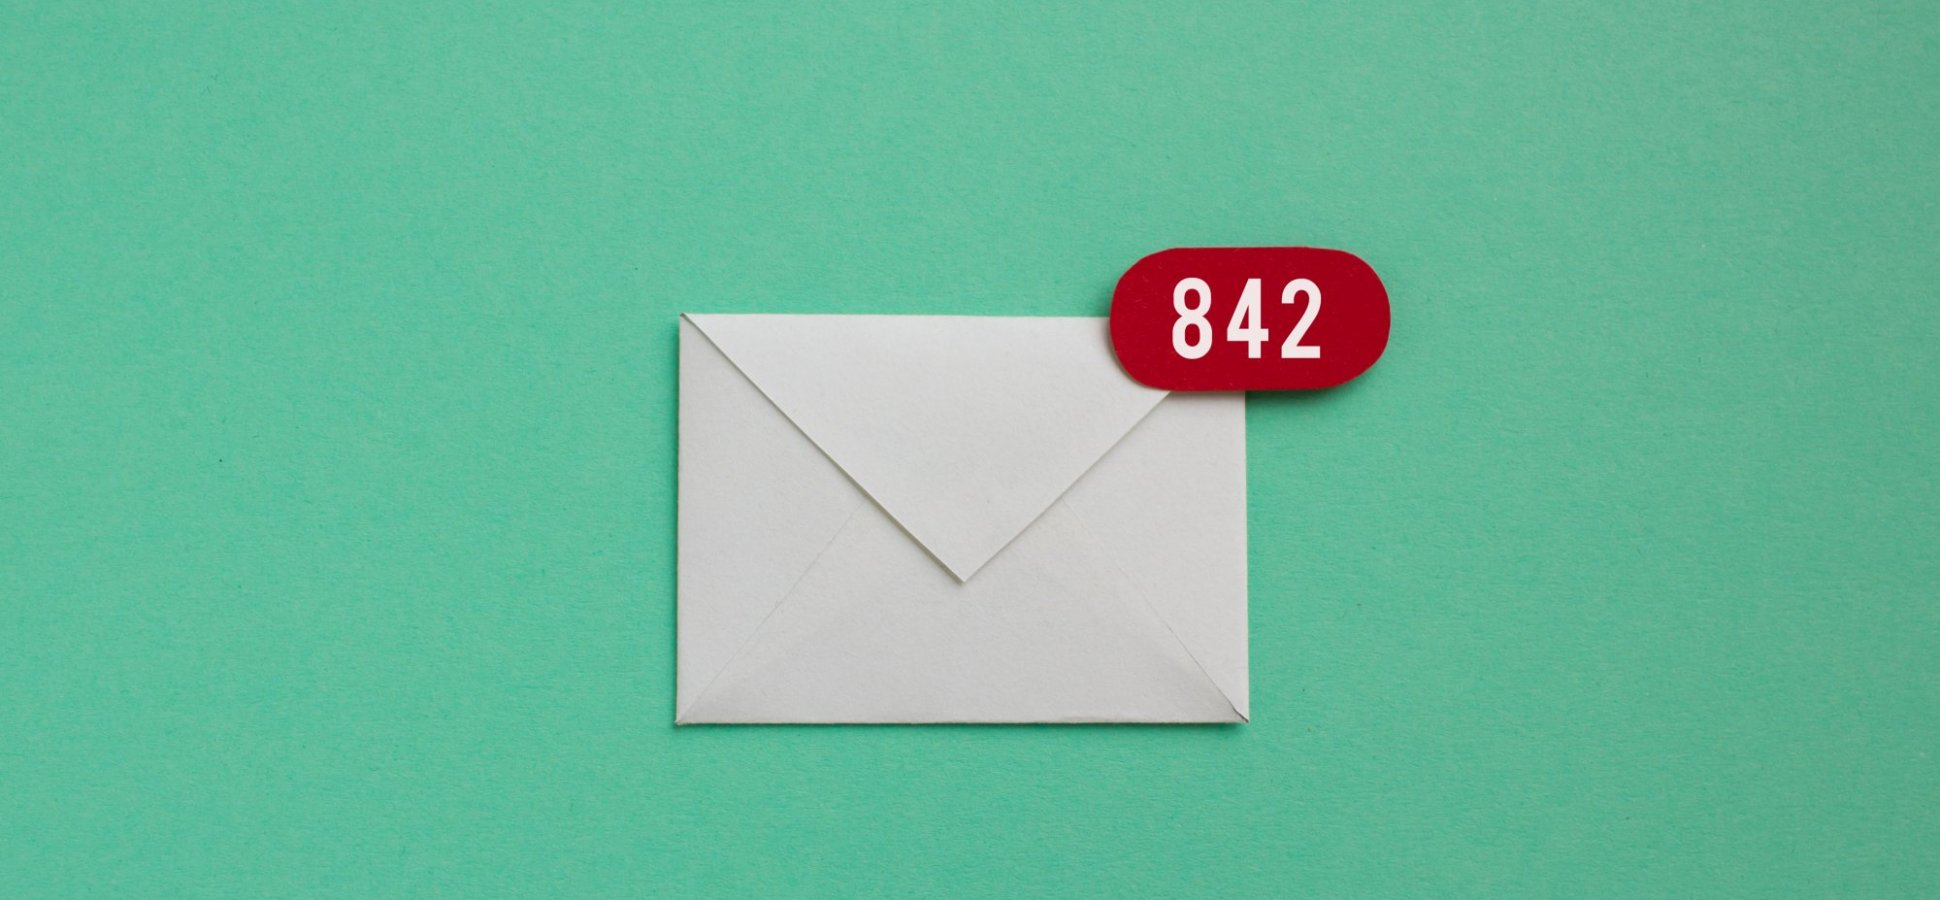 How Long Should It Take to Respond to an Email? Exactly This Long, Says a Successful CEO (But Is He Right?)